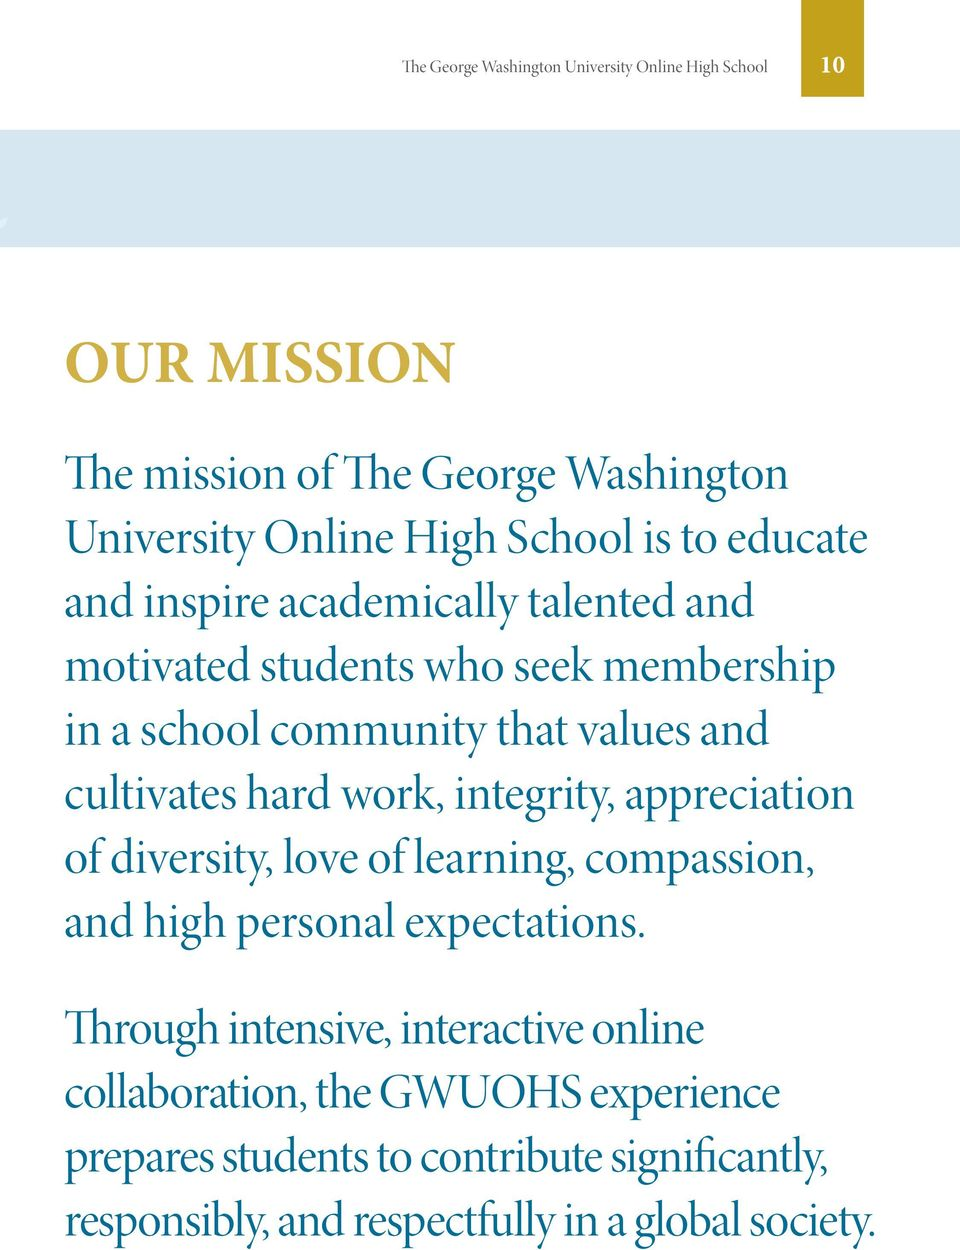 work, integrity, appreciation of diversity, love of learning, compassion, and high personal expectations.